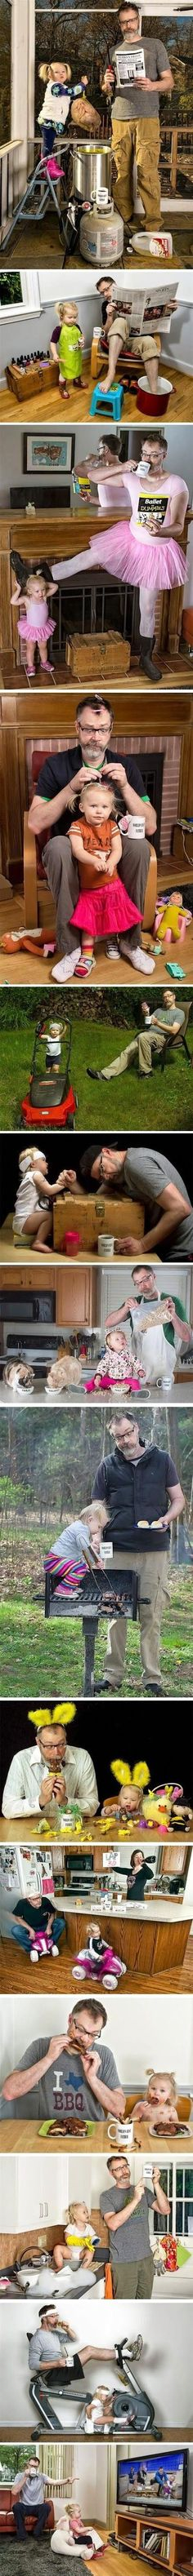 Funny world's best dad photo strip http://ibeebz.com